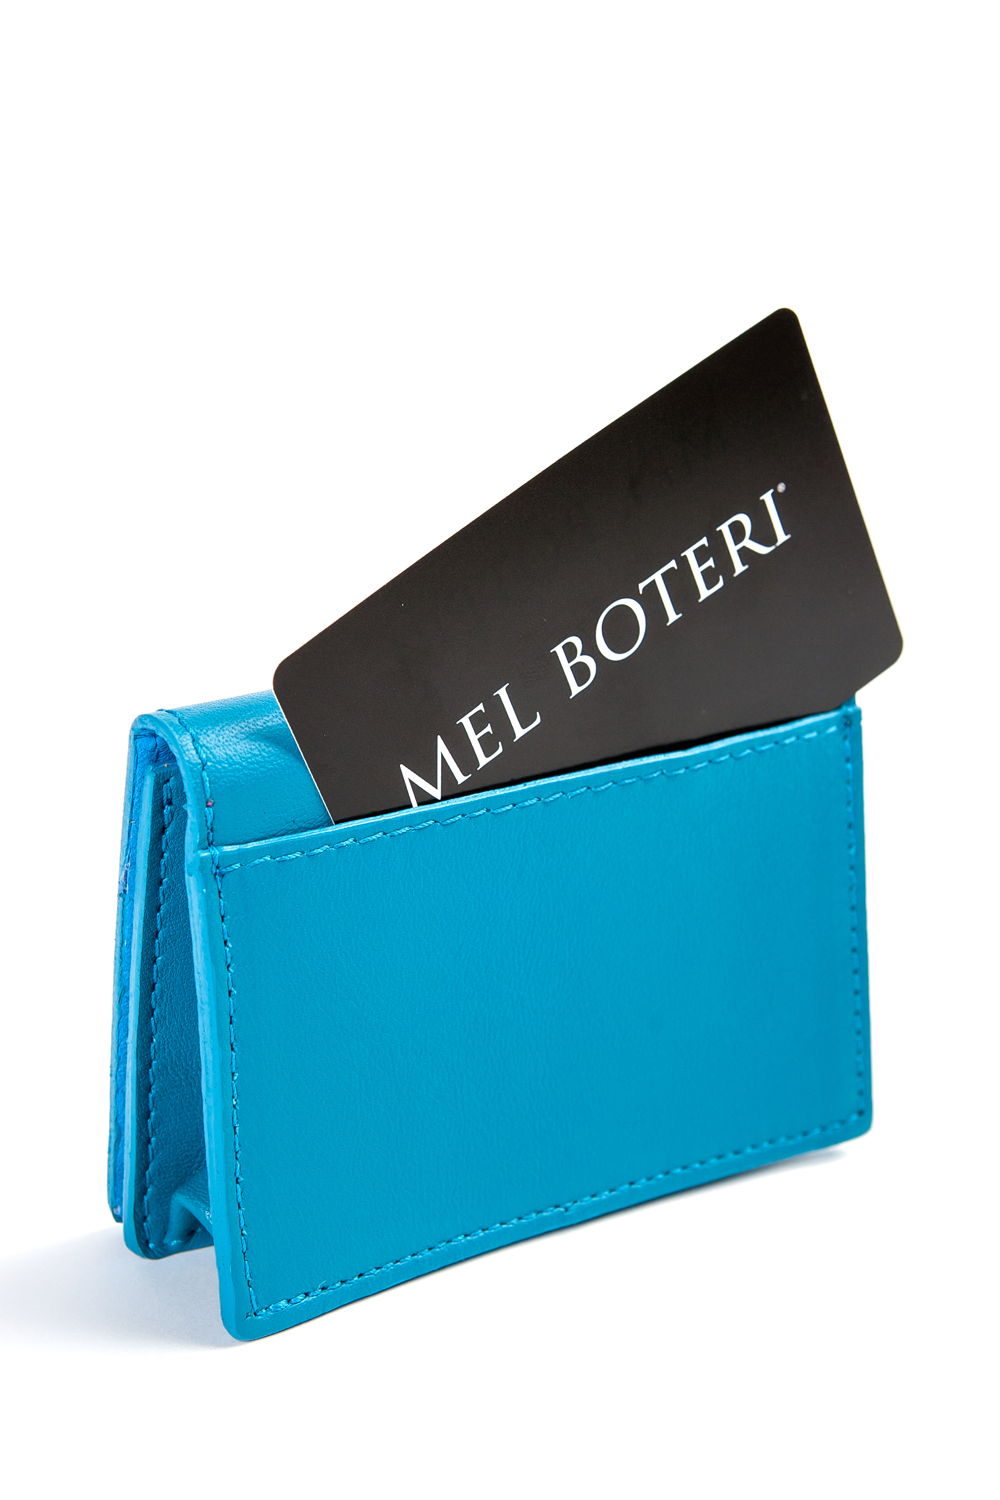 Mel Boteri | 'Nice To Meet You' Cardholder | Turquoise Leather | Back Pocket